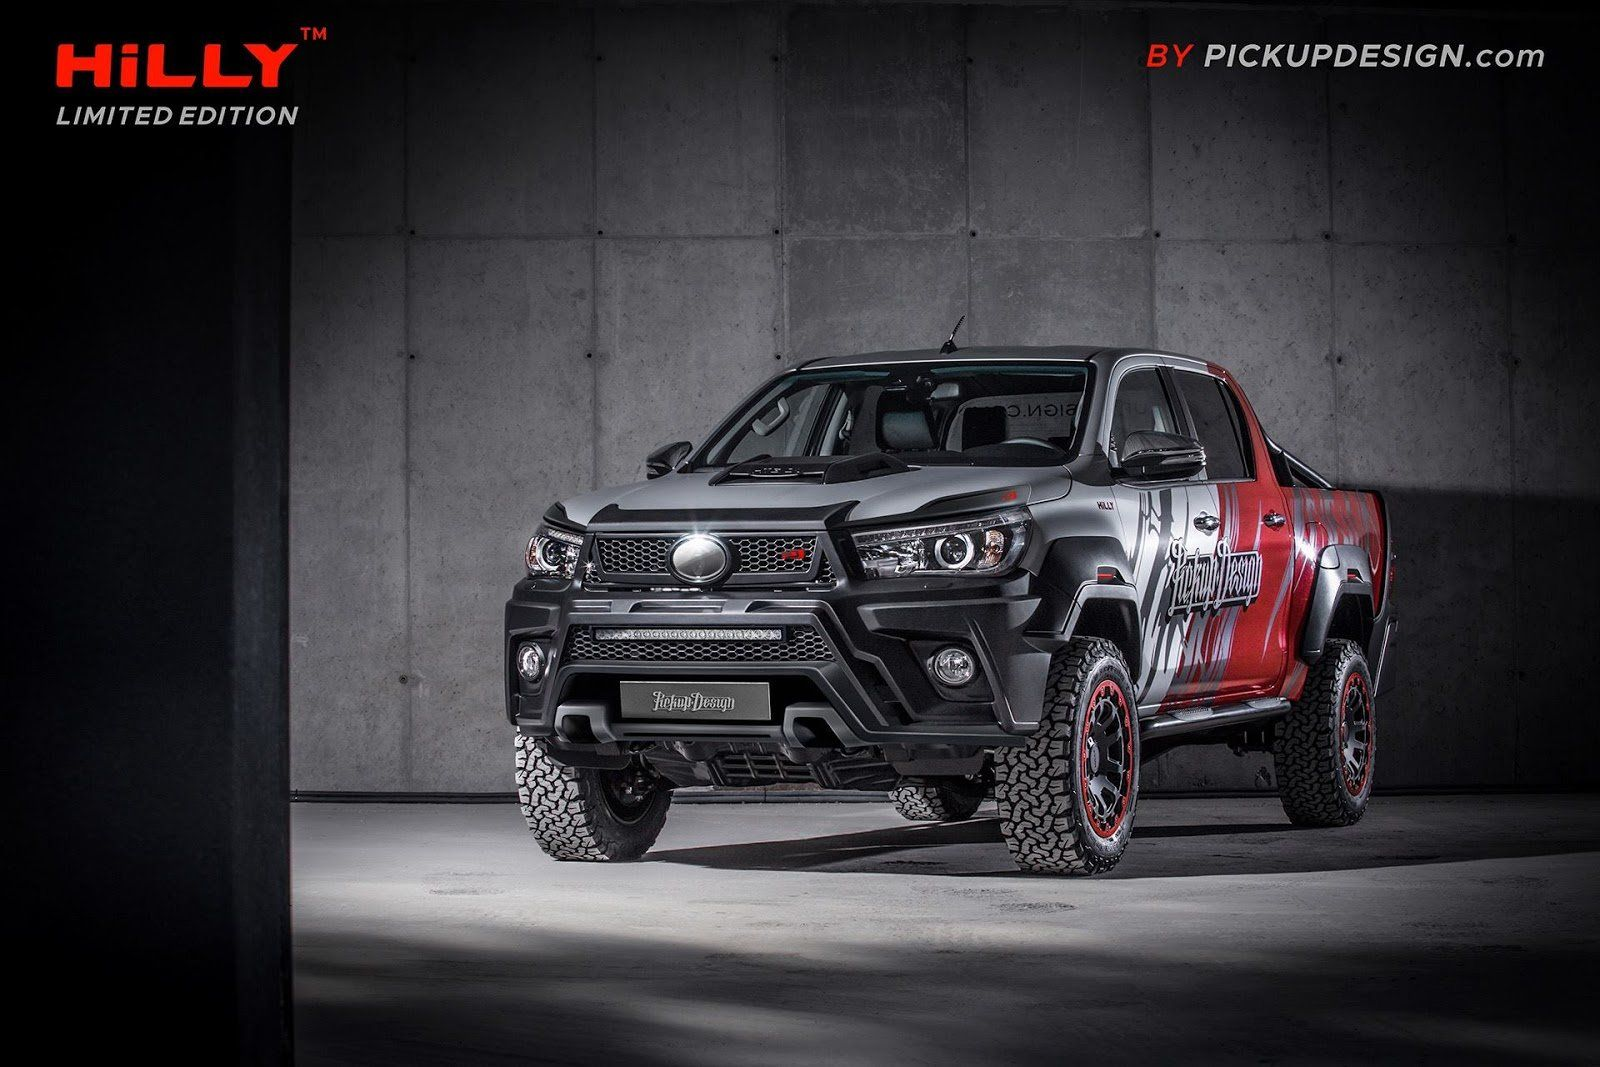 Hilly Toyota Hilux By Carlex Design Project Pickup Design Toyota Hilux Toyota Design